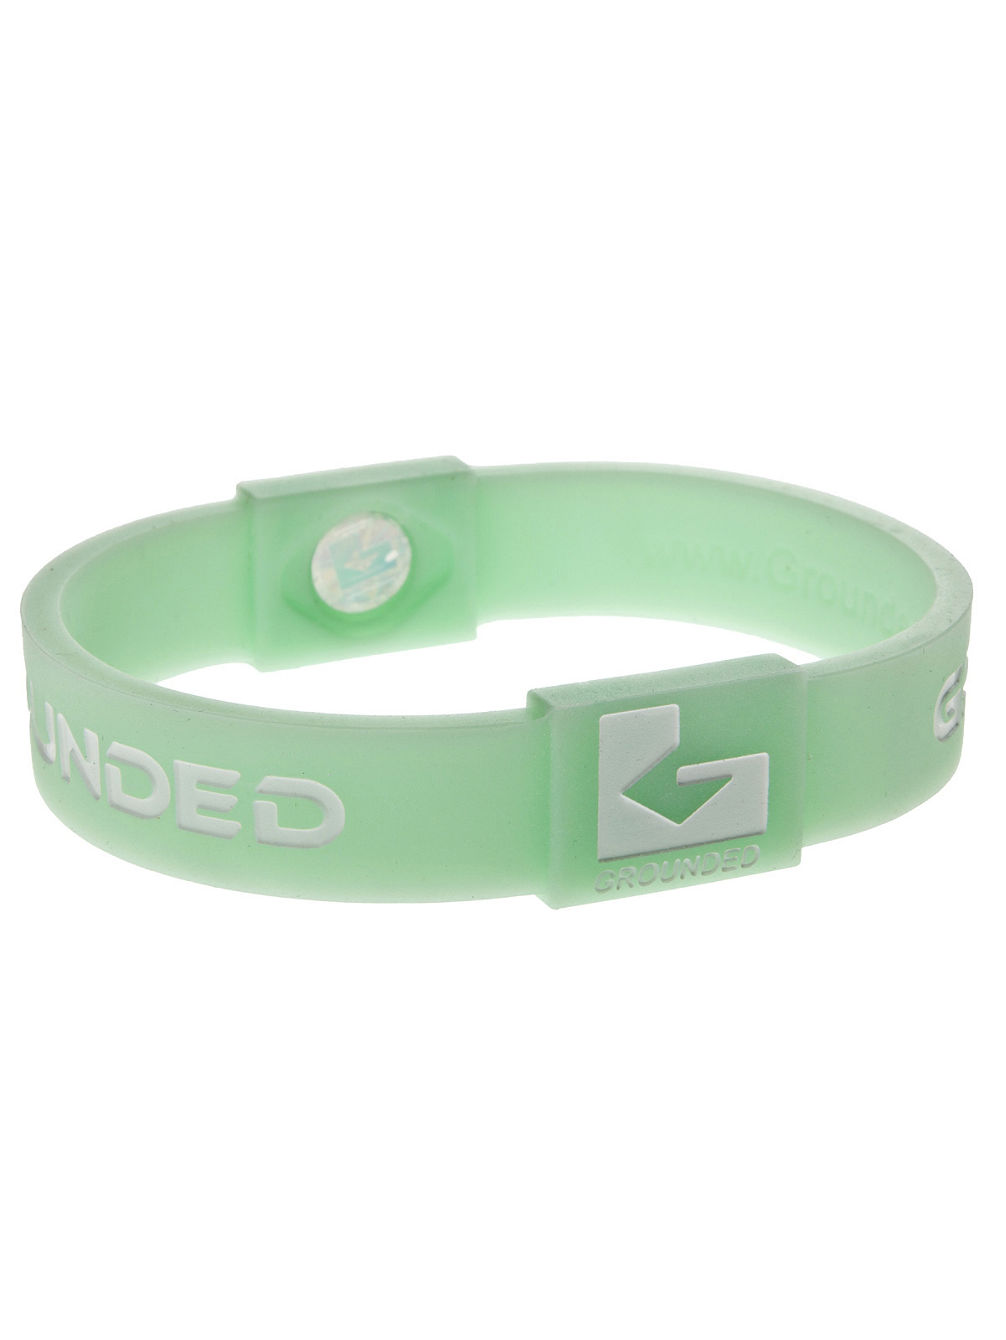 "Armband Silikon 6"" Glow in The Dark"